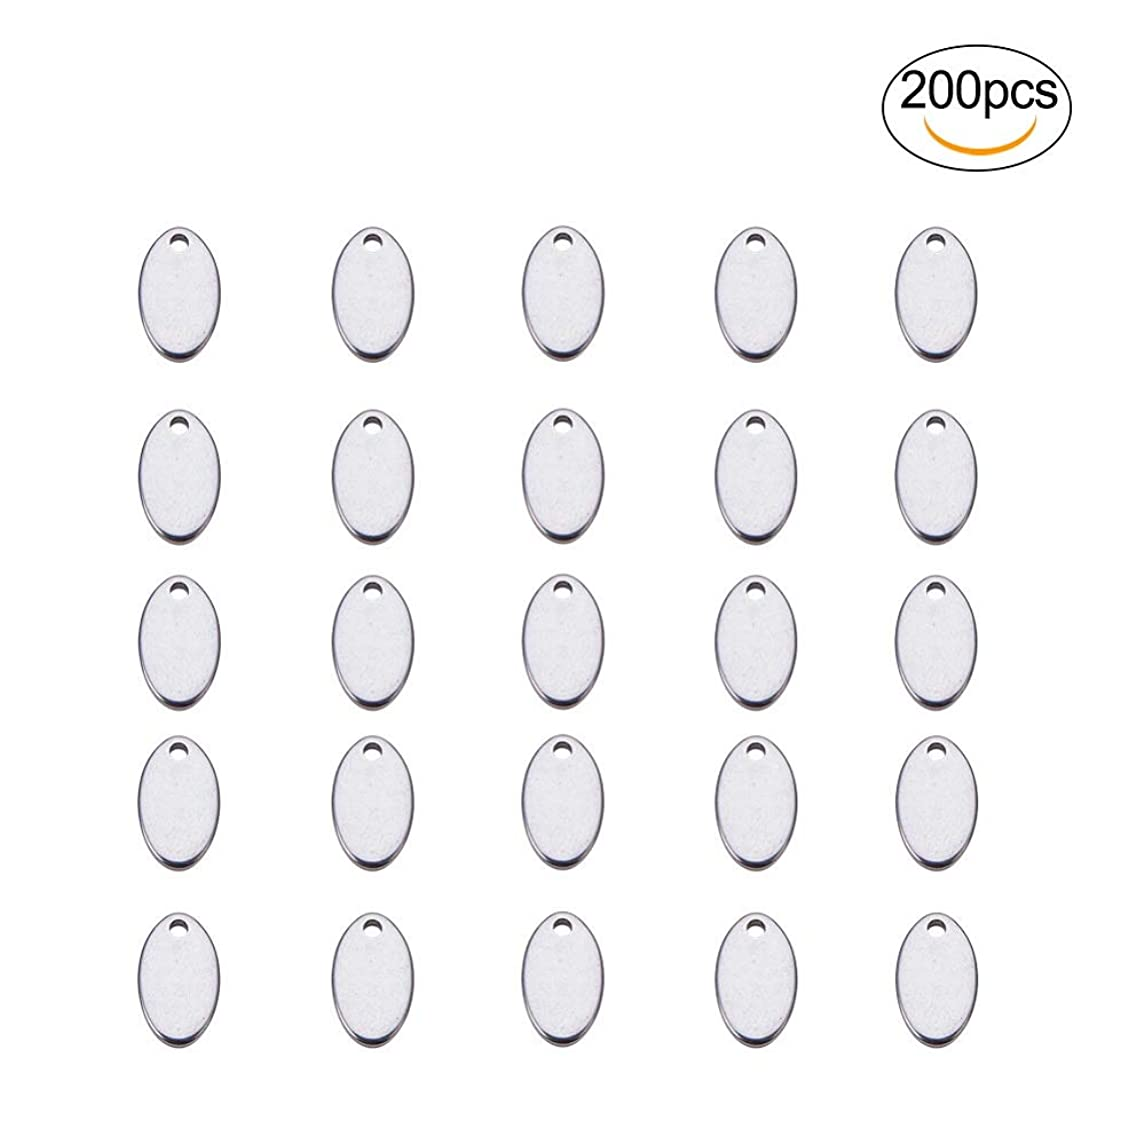 200 Pcs Stainless Steel Oval Blank Tag Charms Pendants,Stamping Tag Pendants Sets,Handmade Pendant Jewelry Accessories.Used for Bracelets,Earrings,Pendants and Various DIY Accessories. (Silver)